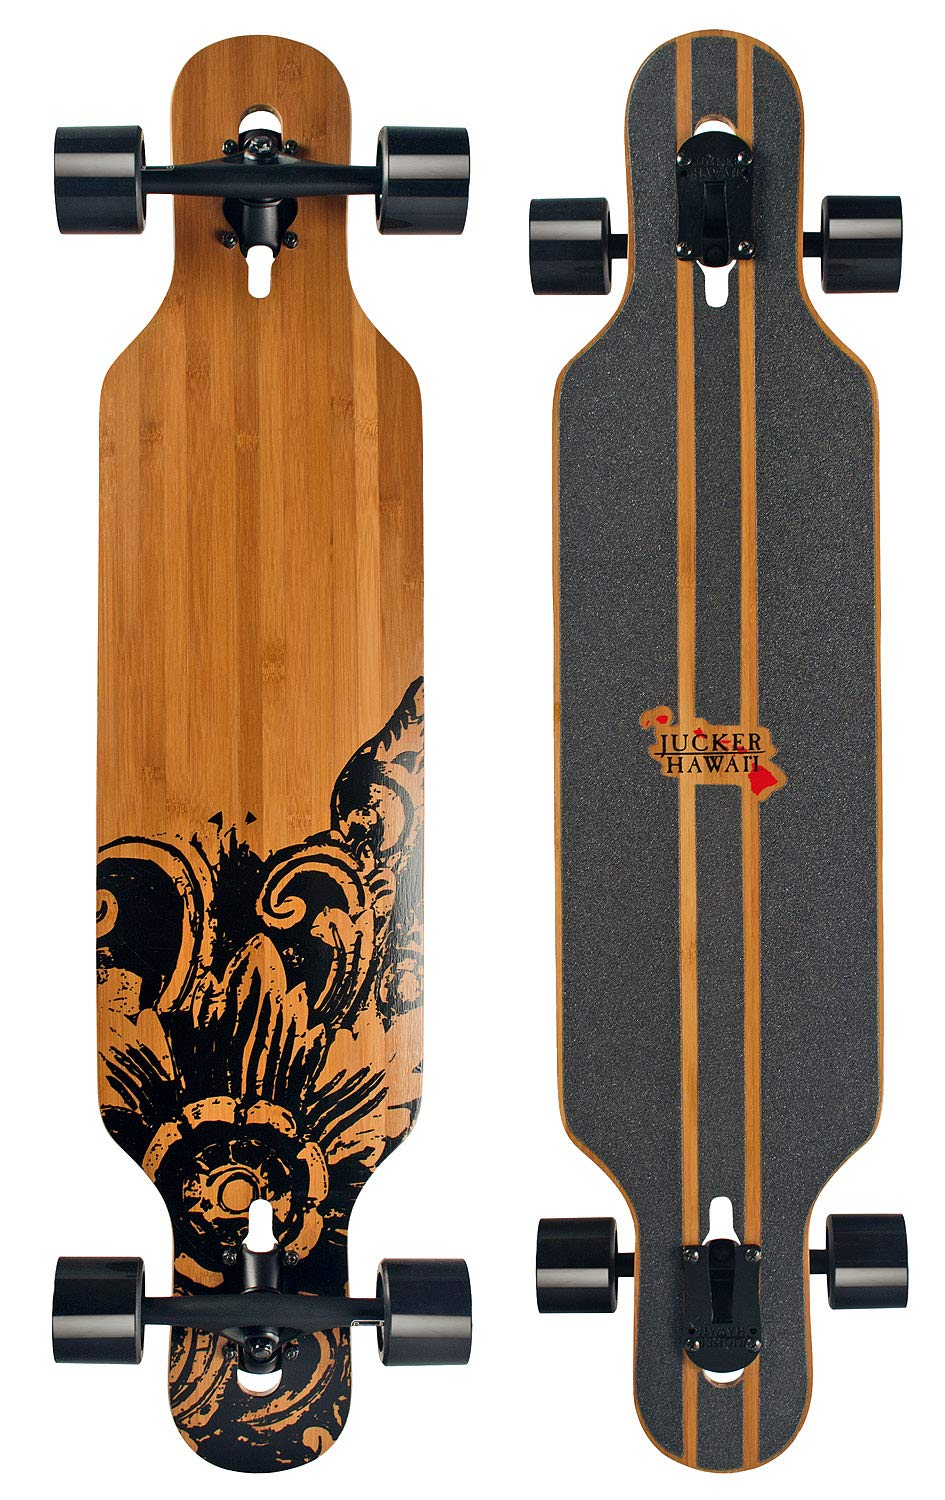 JUCKER HAWAII Monopatín Longboard New Hoku Flex 1 (Tabla Larga hasta 110 kg): Amazon.es: Deportes y aire libre